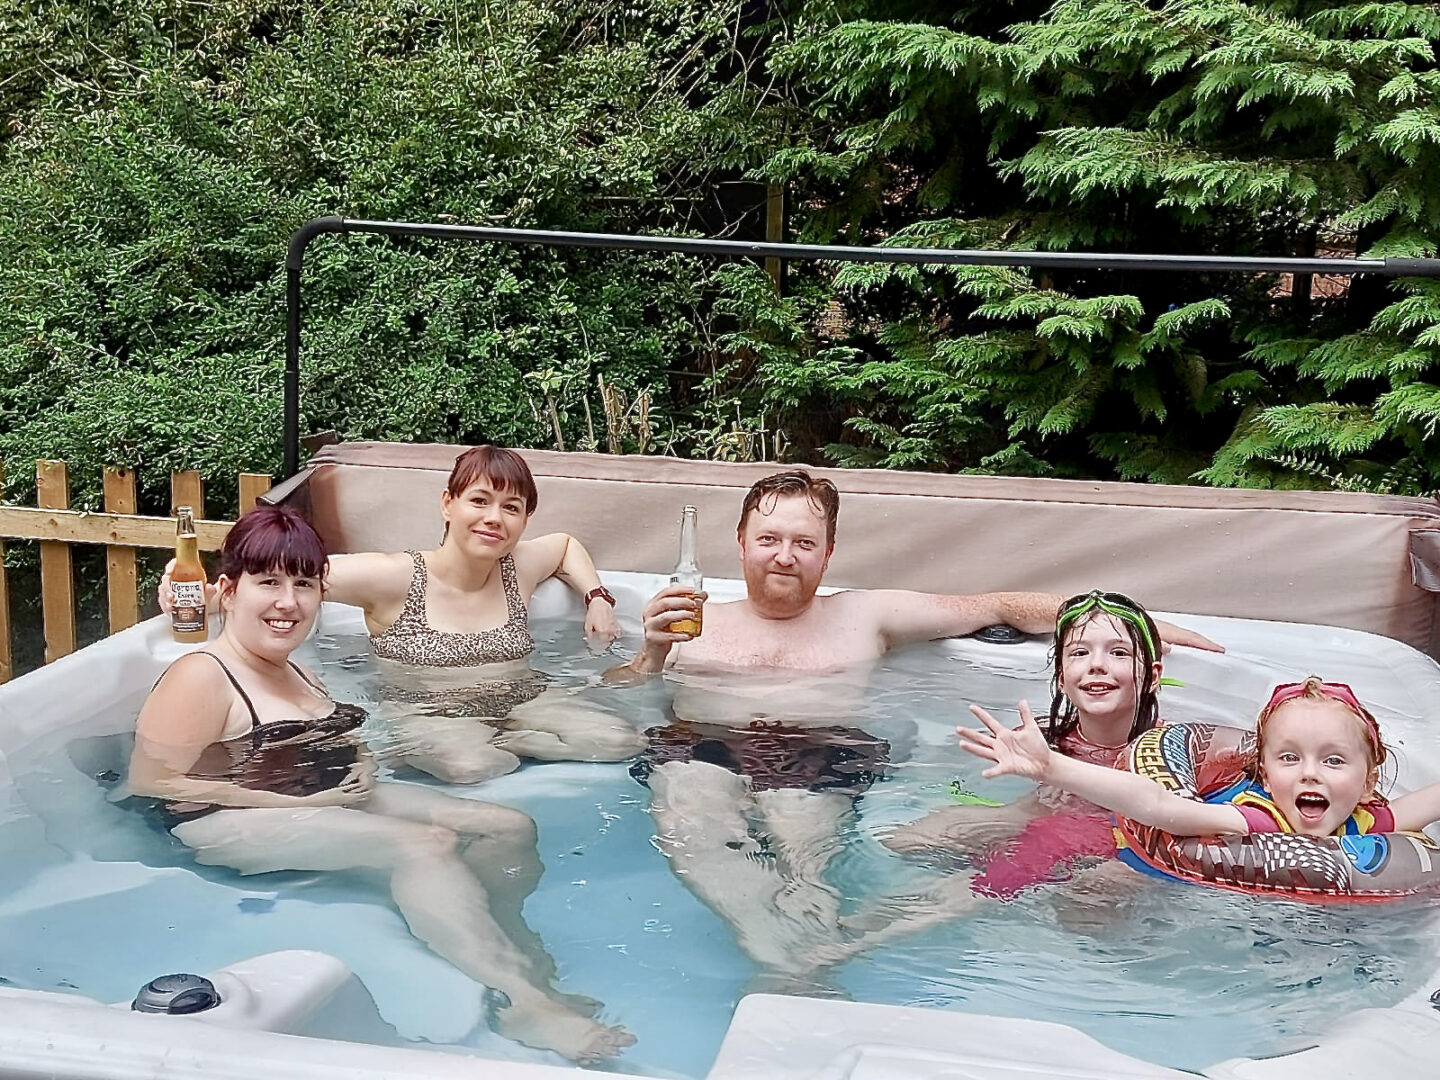 2 women, a man and 2 girls in a hot tub smiling and having fun.